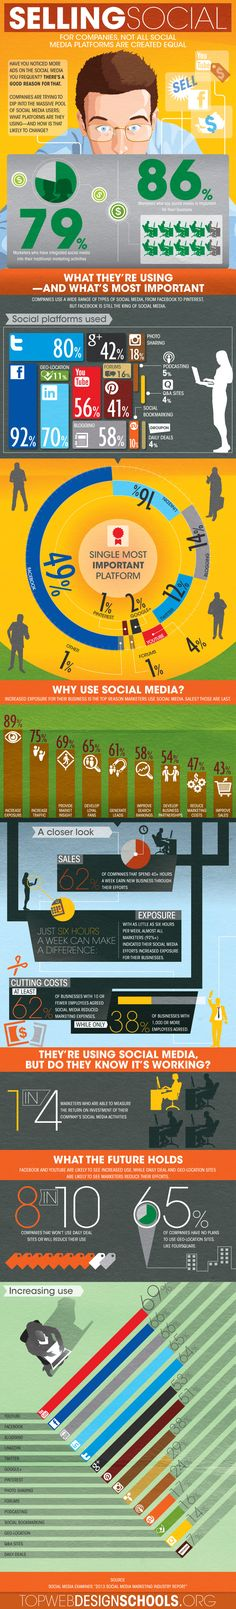 How (And Why) Brands Are Using Social Media For Business #INFOGRAPHIC #marketing